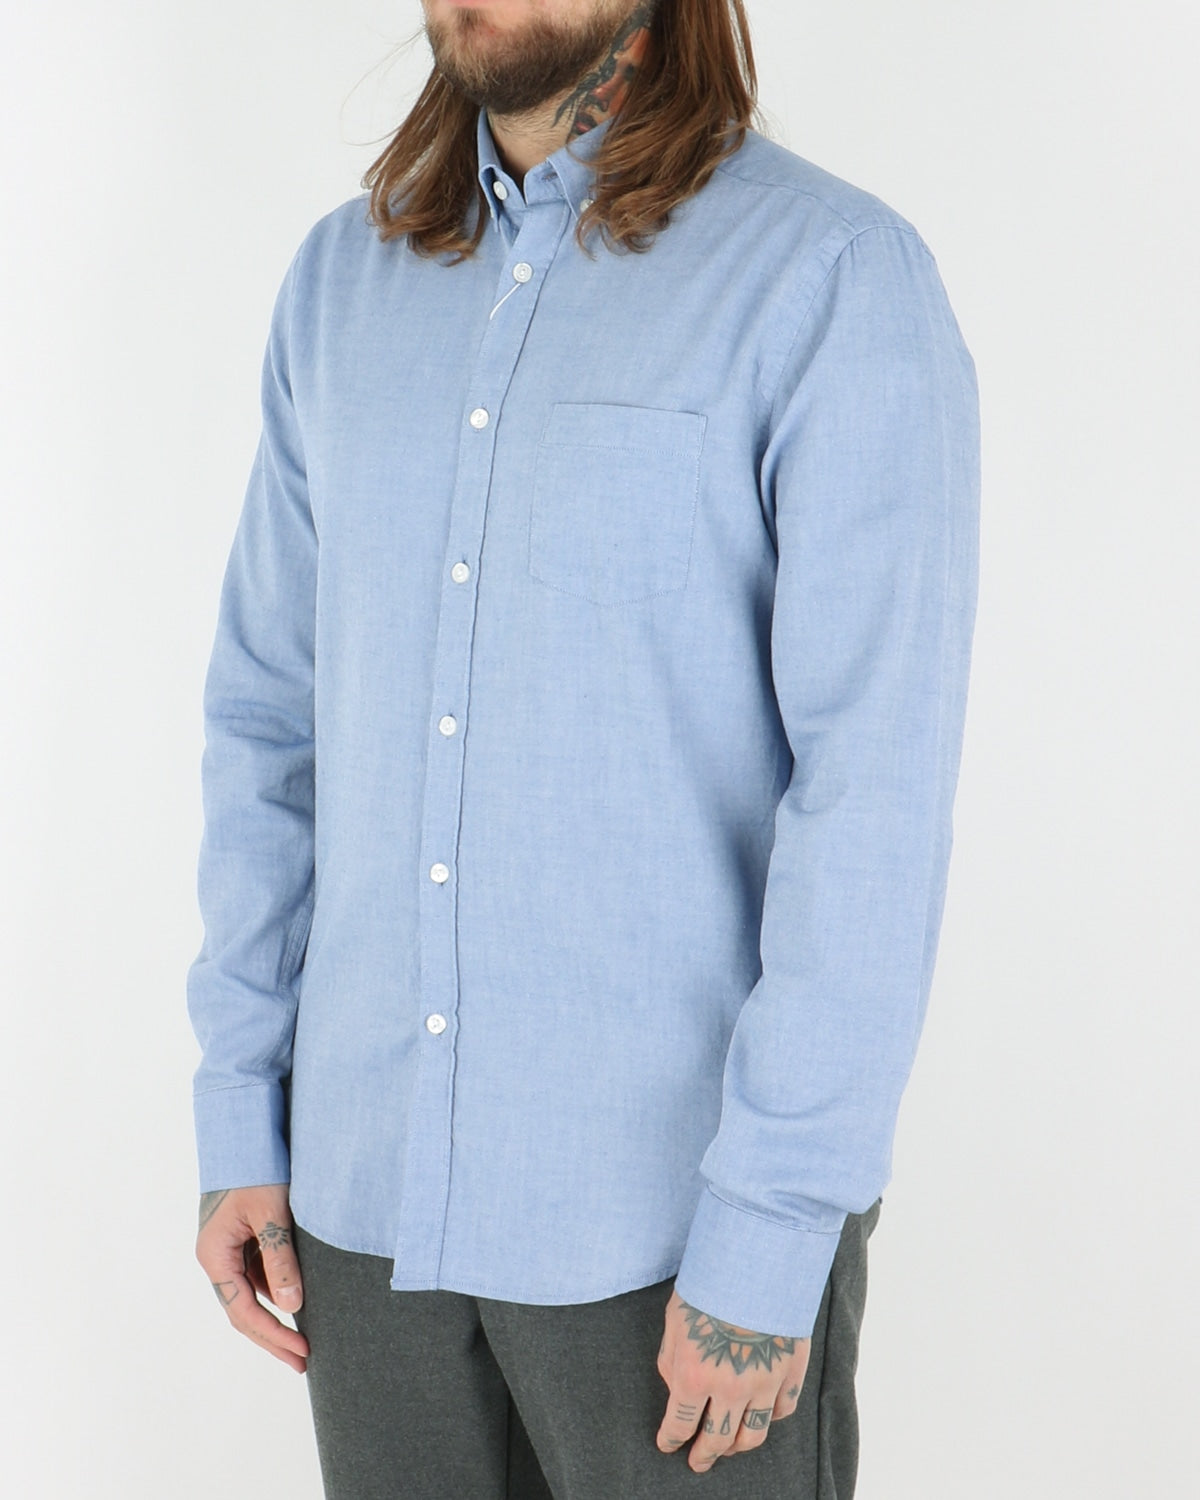 legends_ocean oxford shirt_light blue_view_2_2